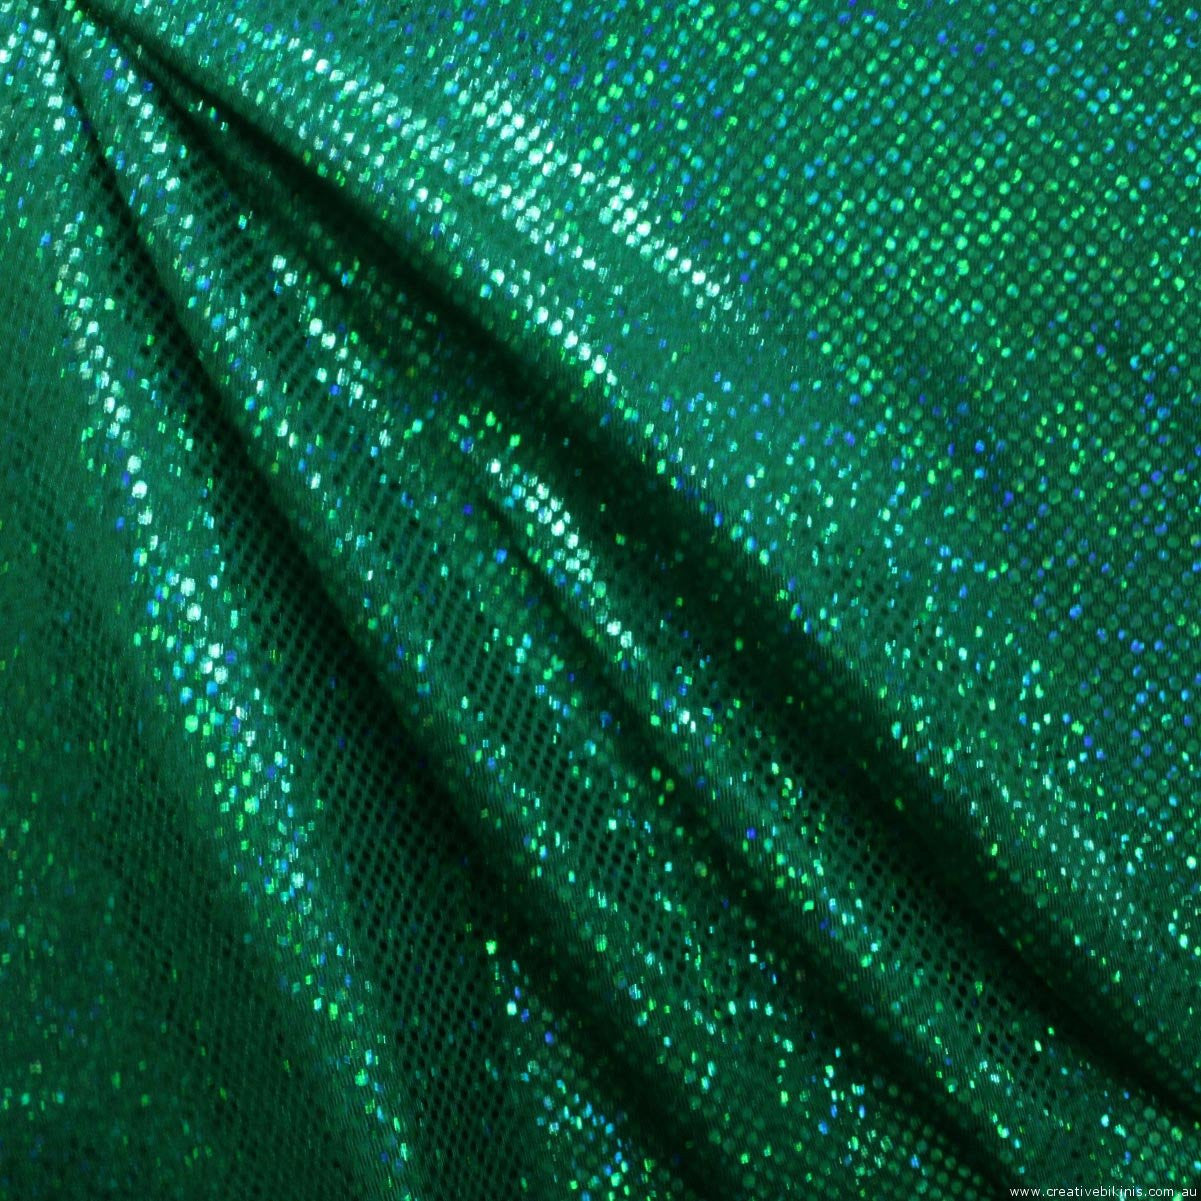 Emerald Green Digital 5000